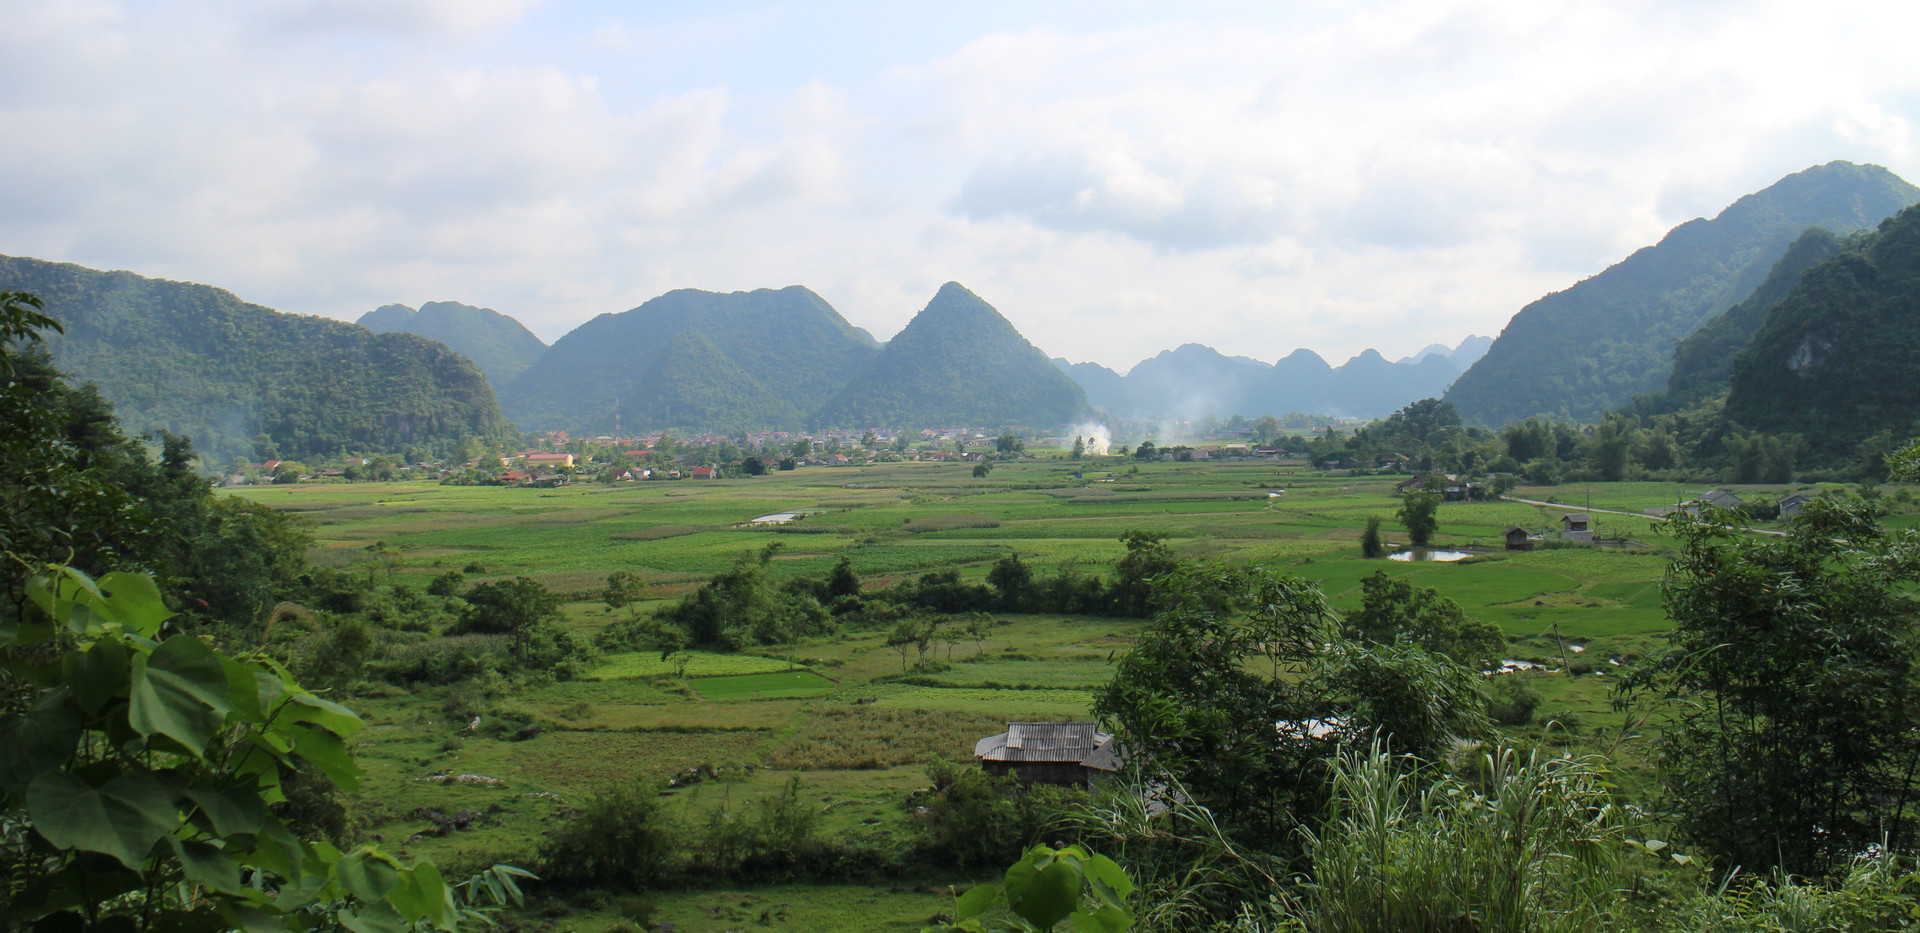 Green rice fields in Bac Son